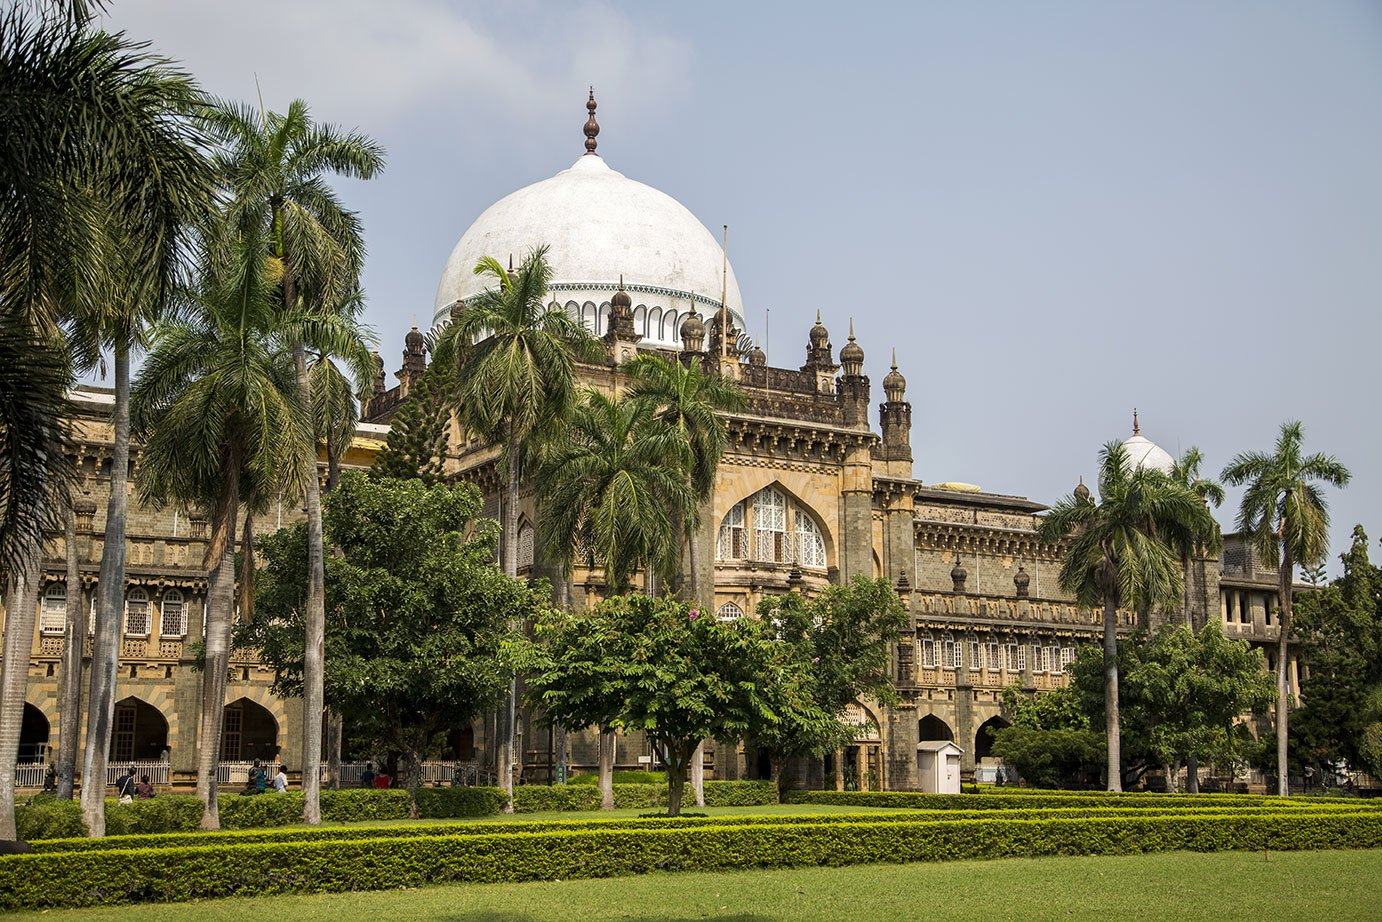 A traditional building surrounded by green trees in Mumbai